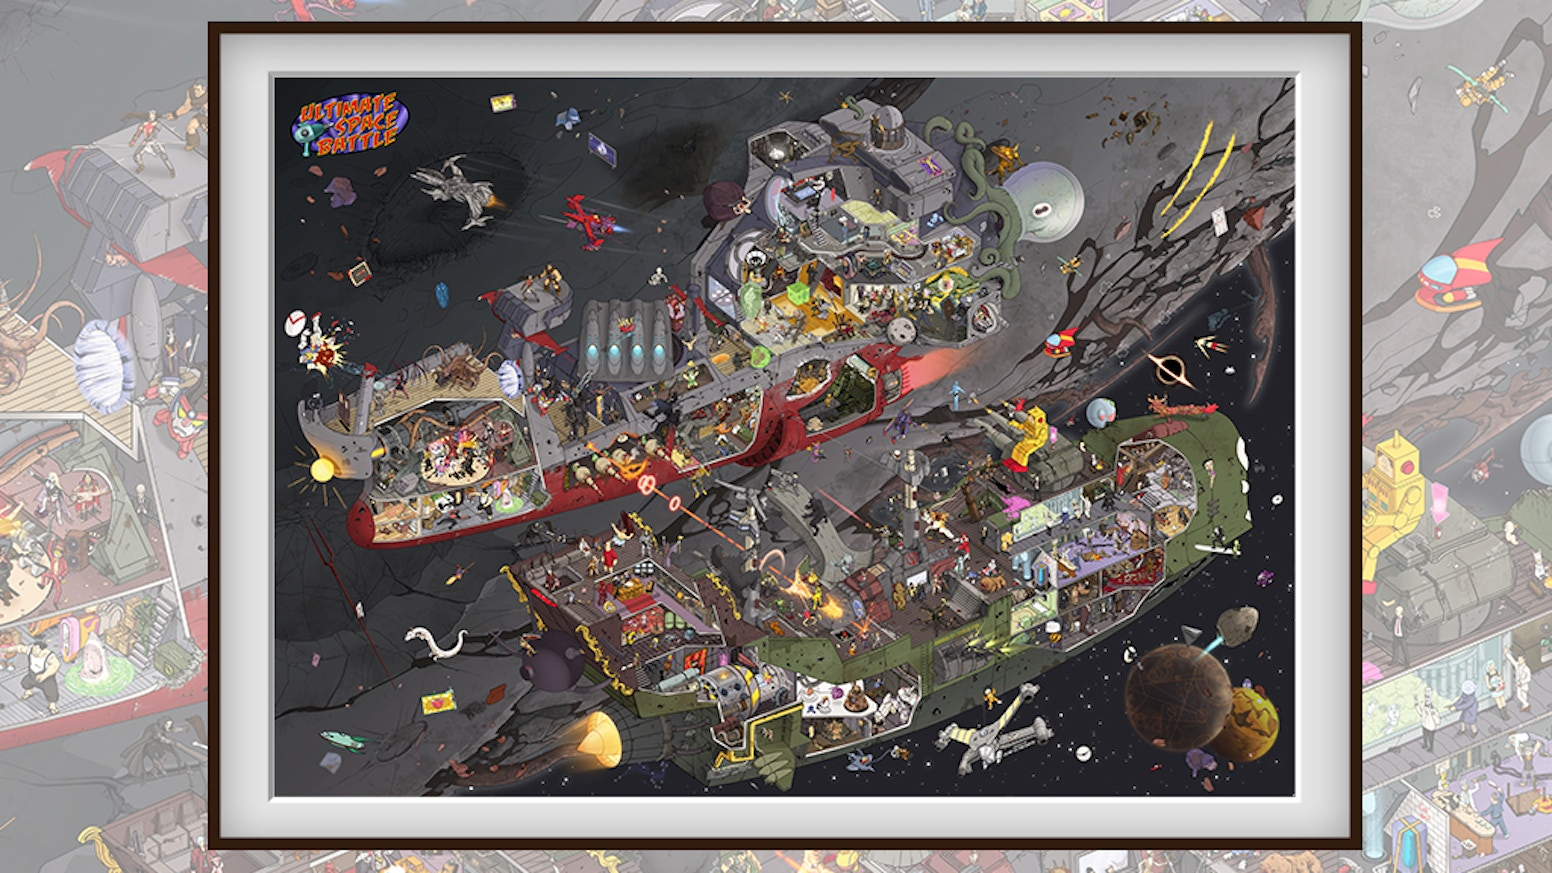 A giant poster of fantastic movie heroes  & super game characters, set in SPACE. Ultra detailed and fully hand-drawn - spot them all!